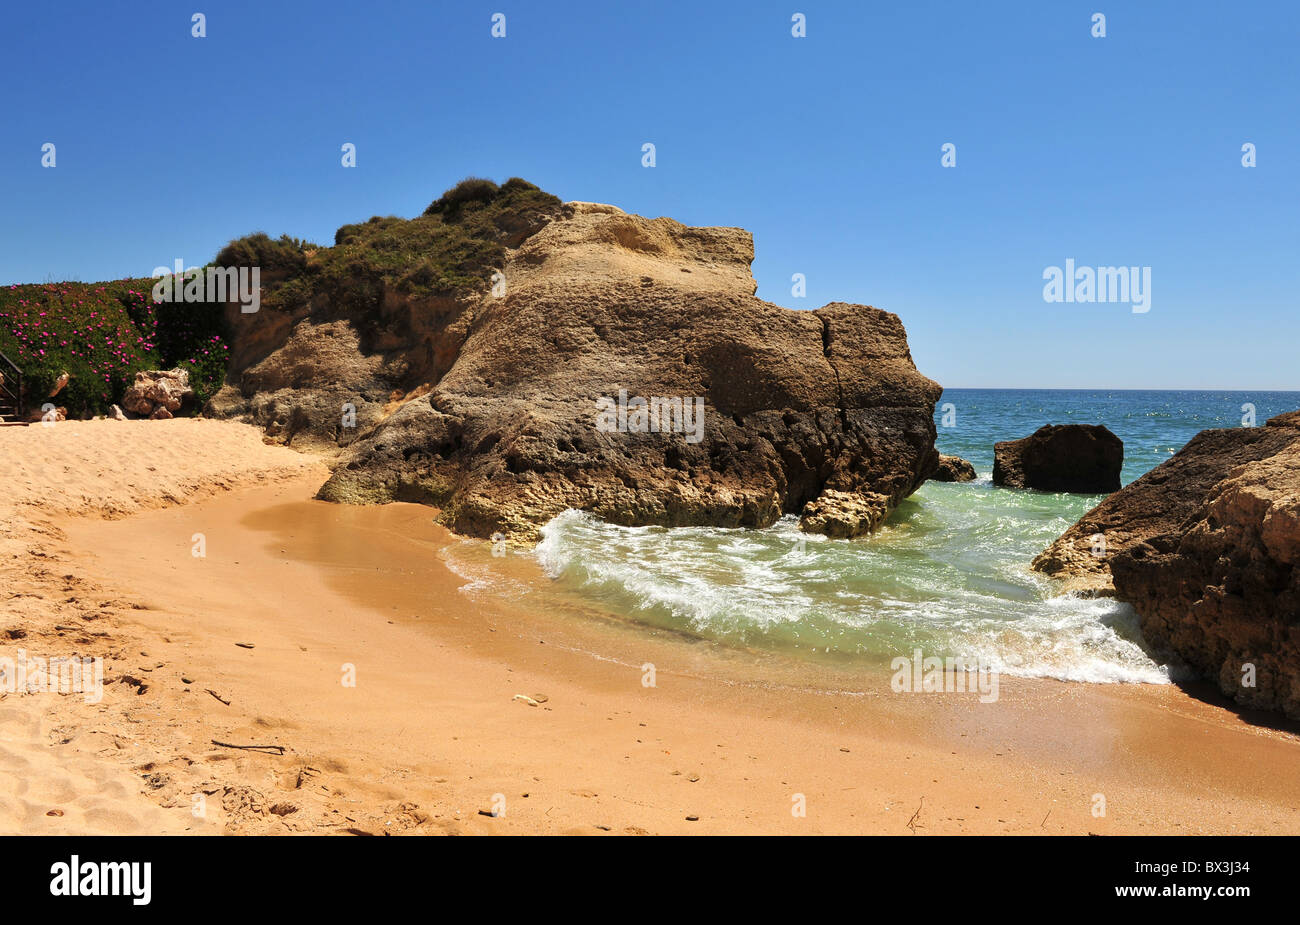 Rocky and sandy cove at Gale, Algarve, Portugal - Stock Image